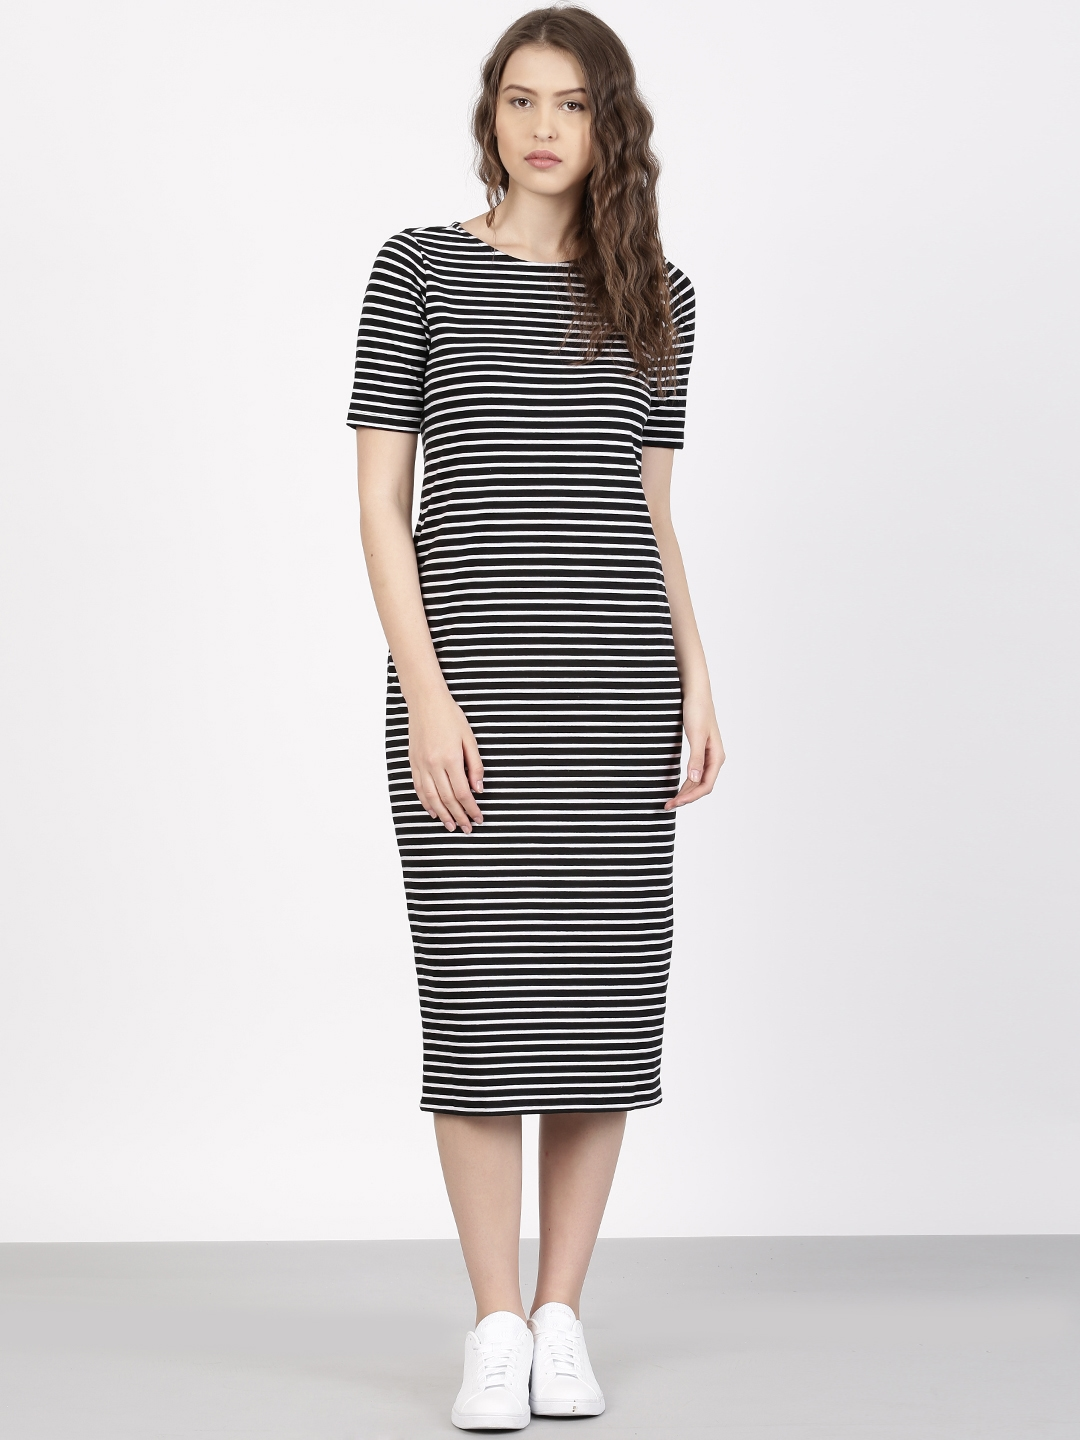 fbae4475bef1 Buy Ether Women Black   White Striped Bodycon Midi Dress - Dresses ...